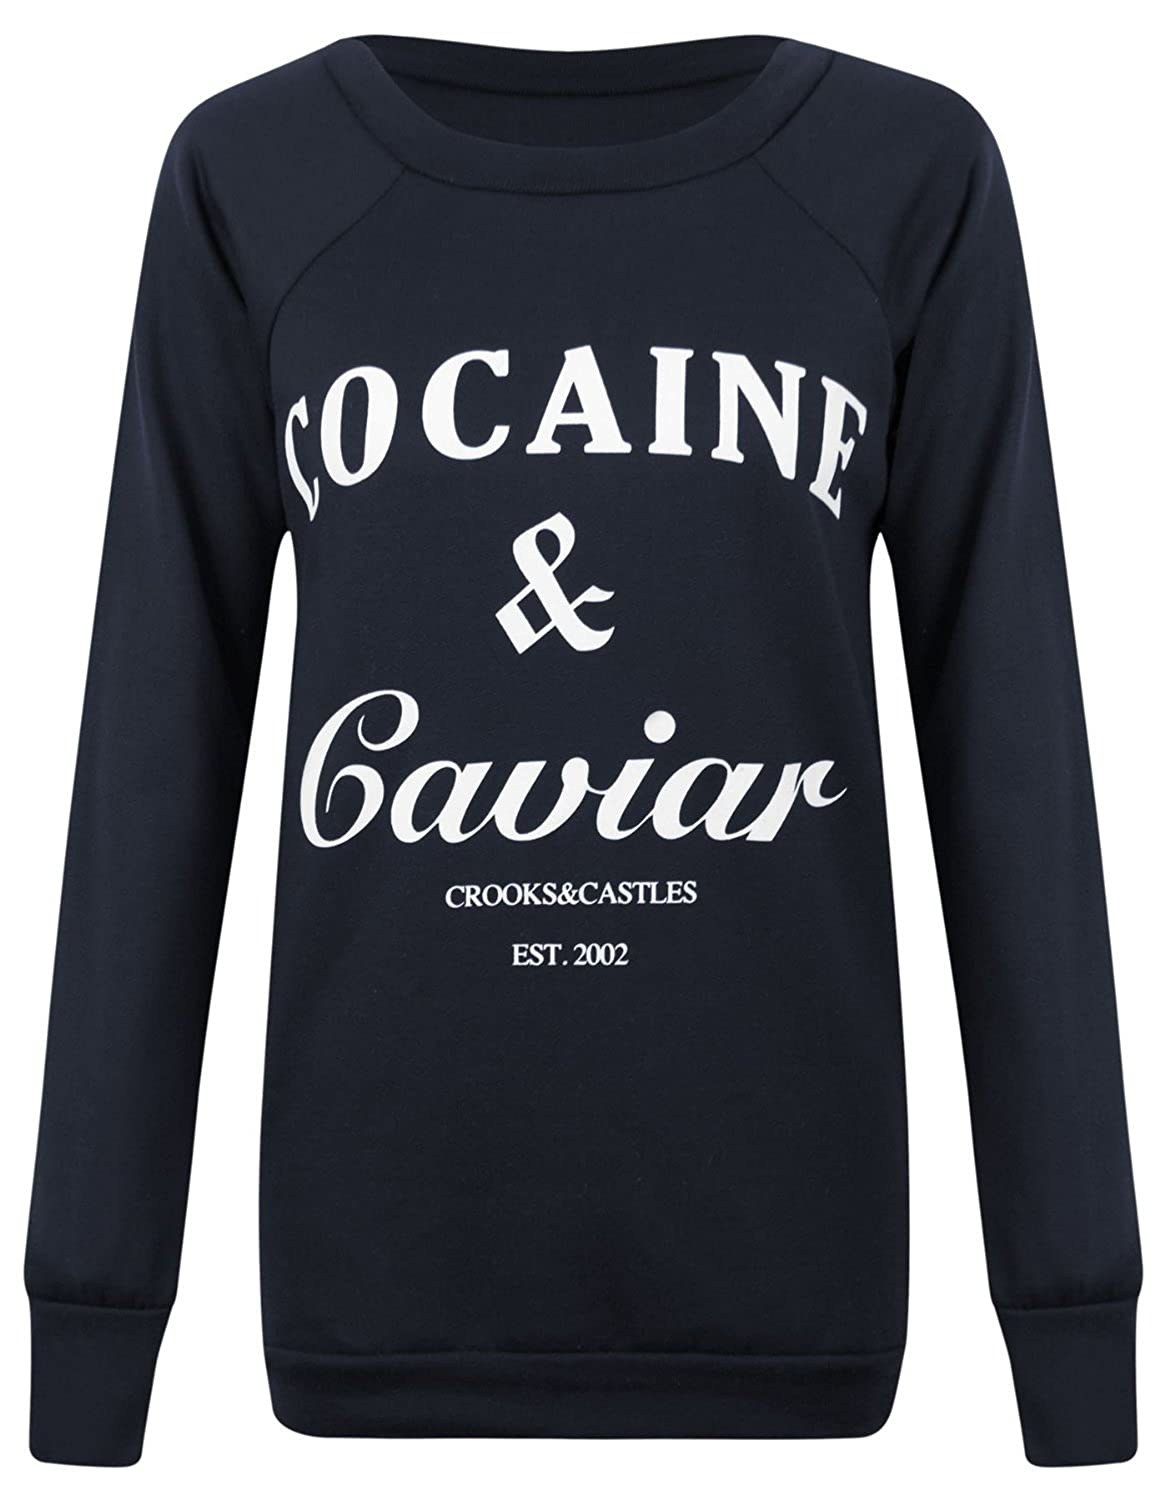 Fast Fashion Damen Sweatshirt Geek Brooklyn Boy Cocaine Druck